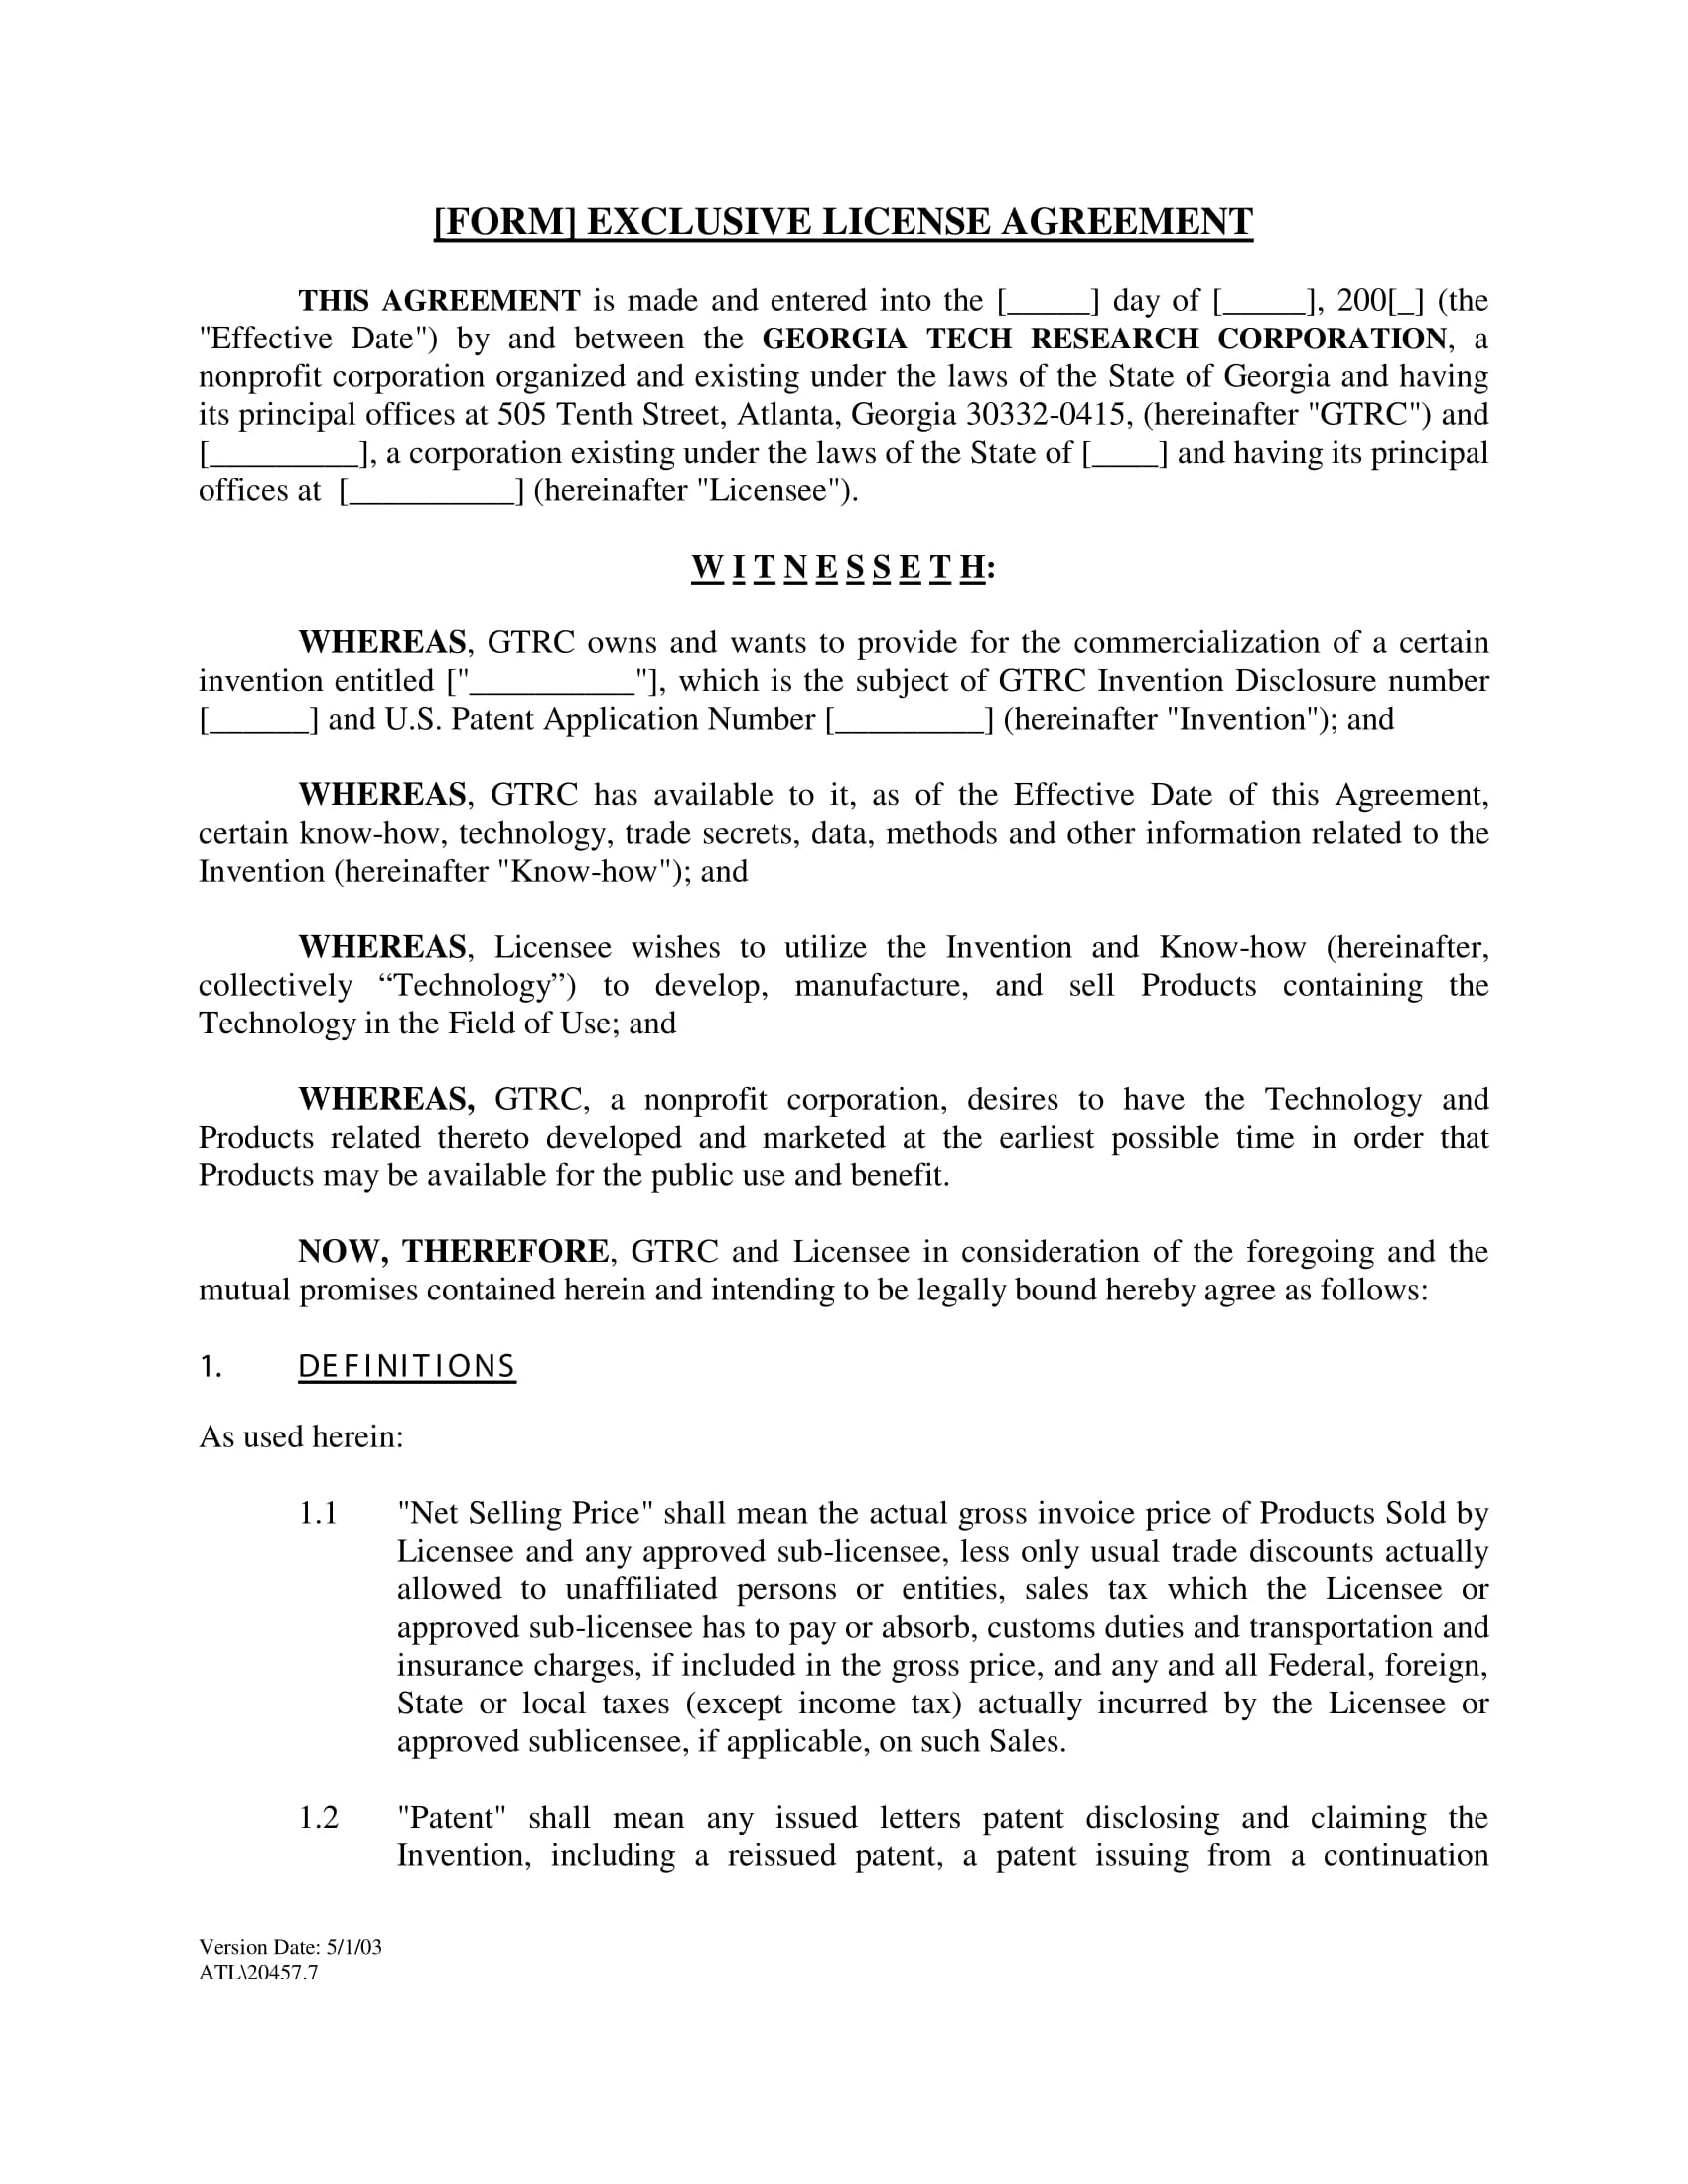 exclusive license agreement long form 01